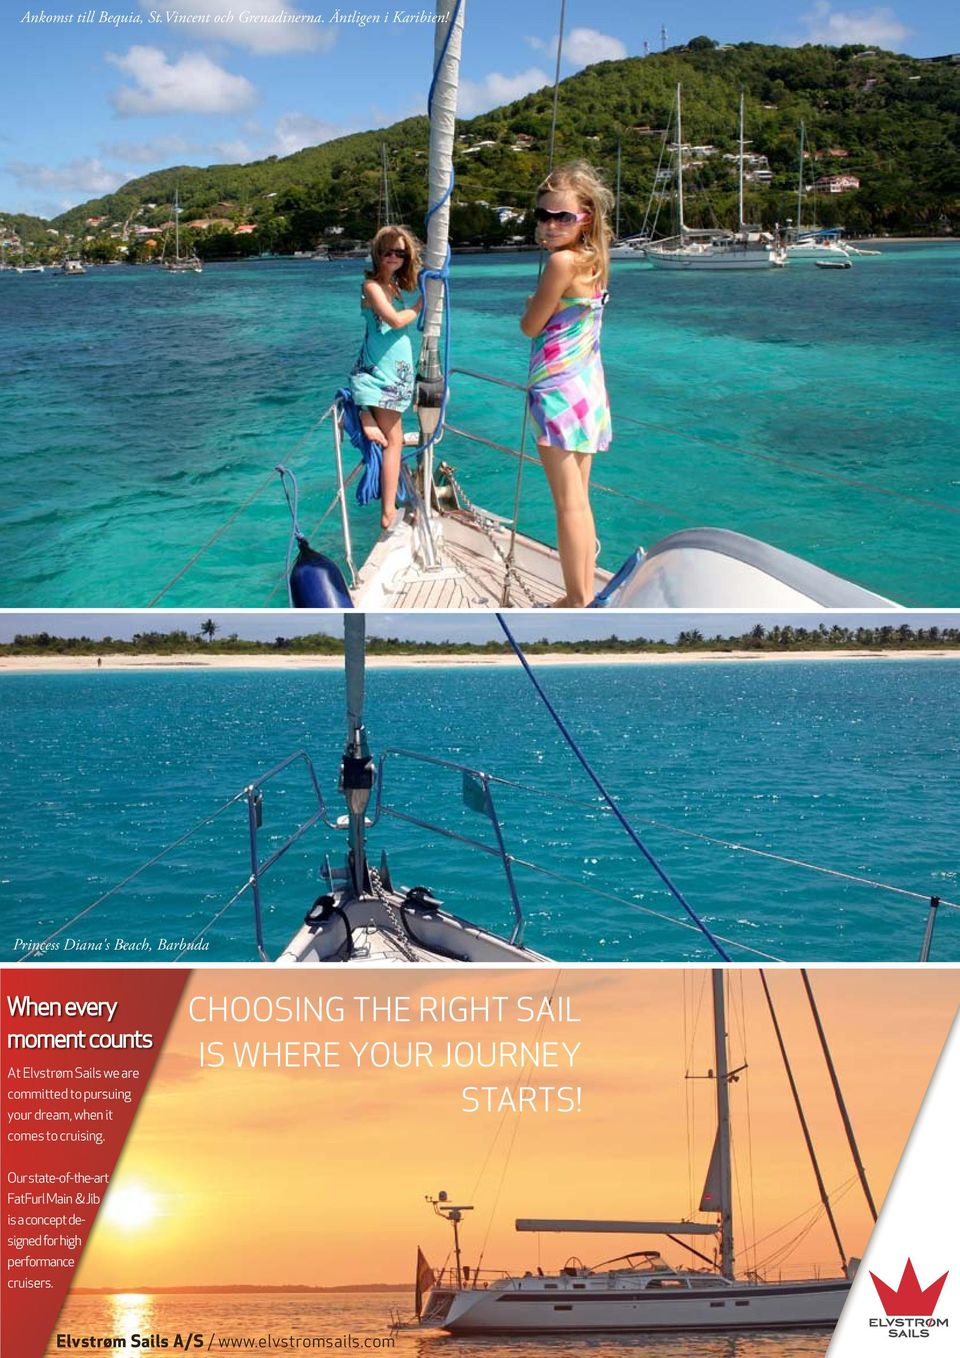 to pursuing your dream, when it your dream, when it comes to cruising. comes to cruising. CHOOSING THE RIGHT SAIL IS IS WHERE YOUR JOURNEY STARTS!